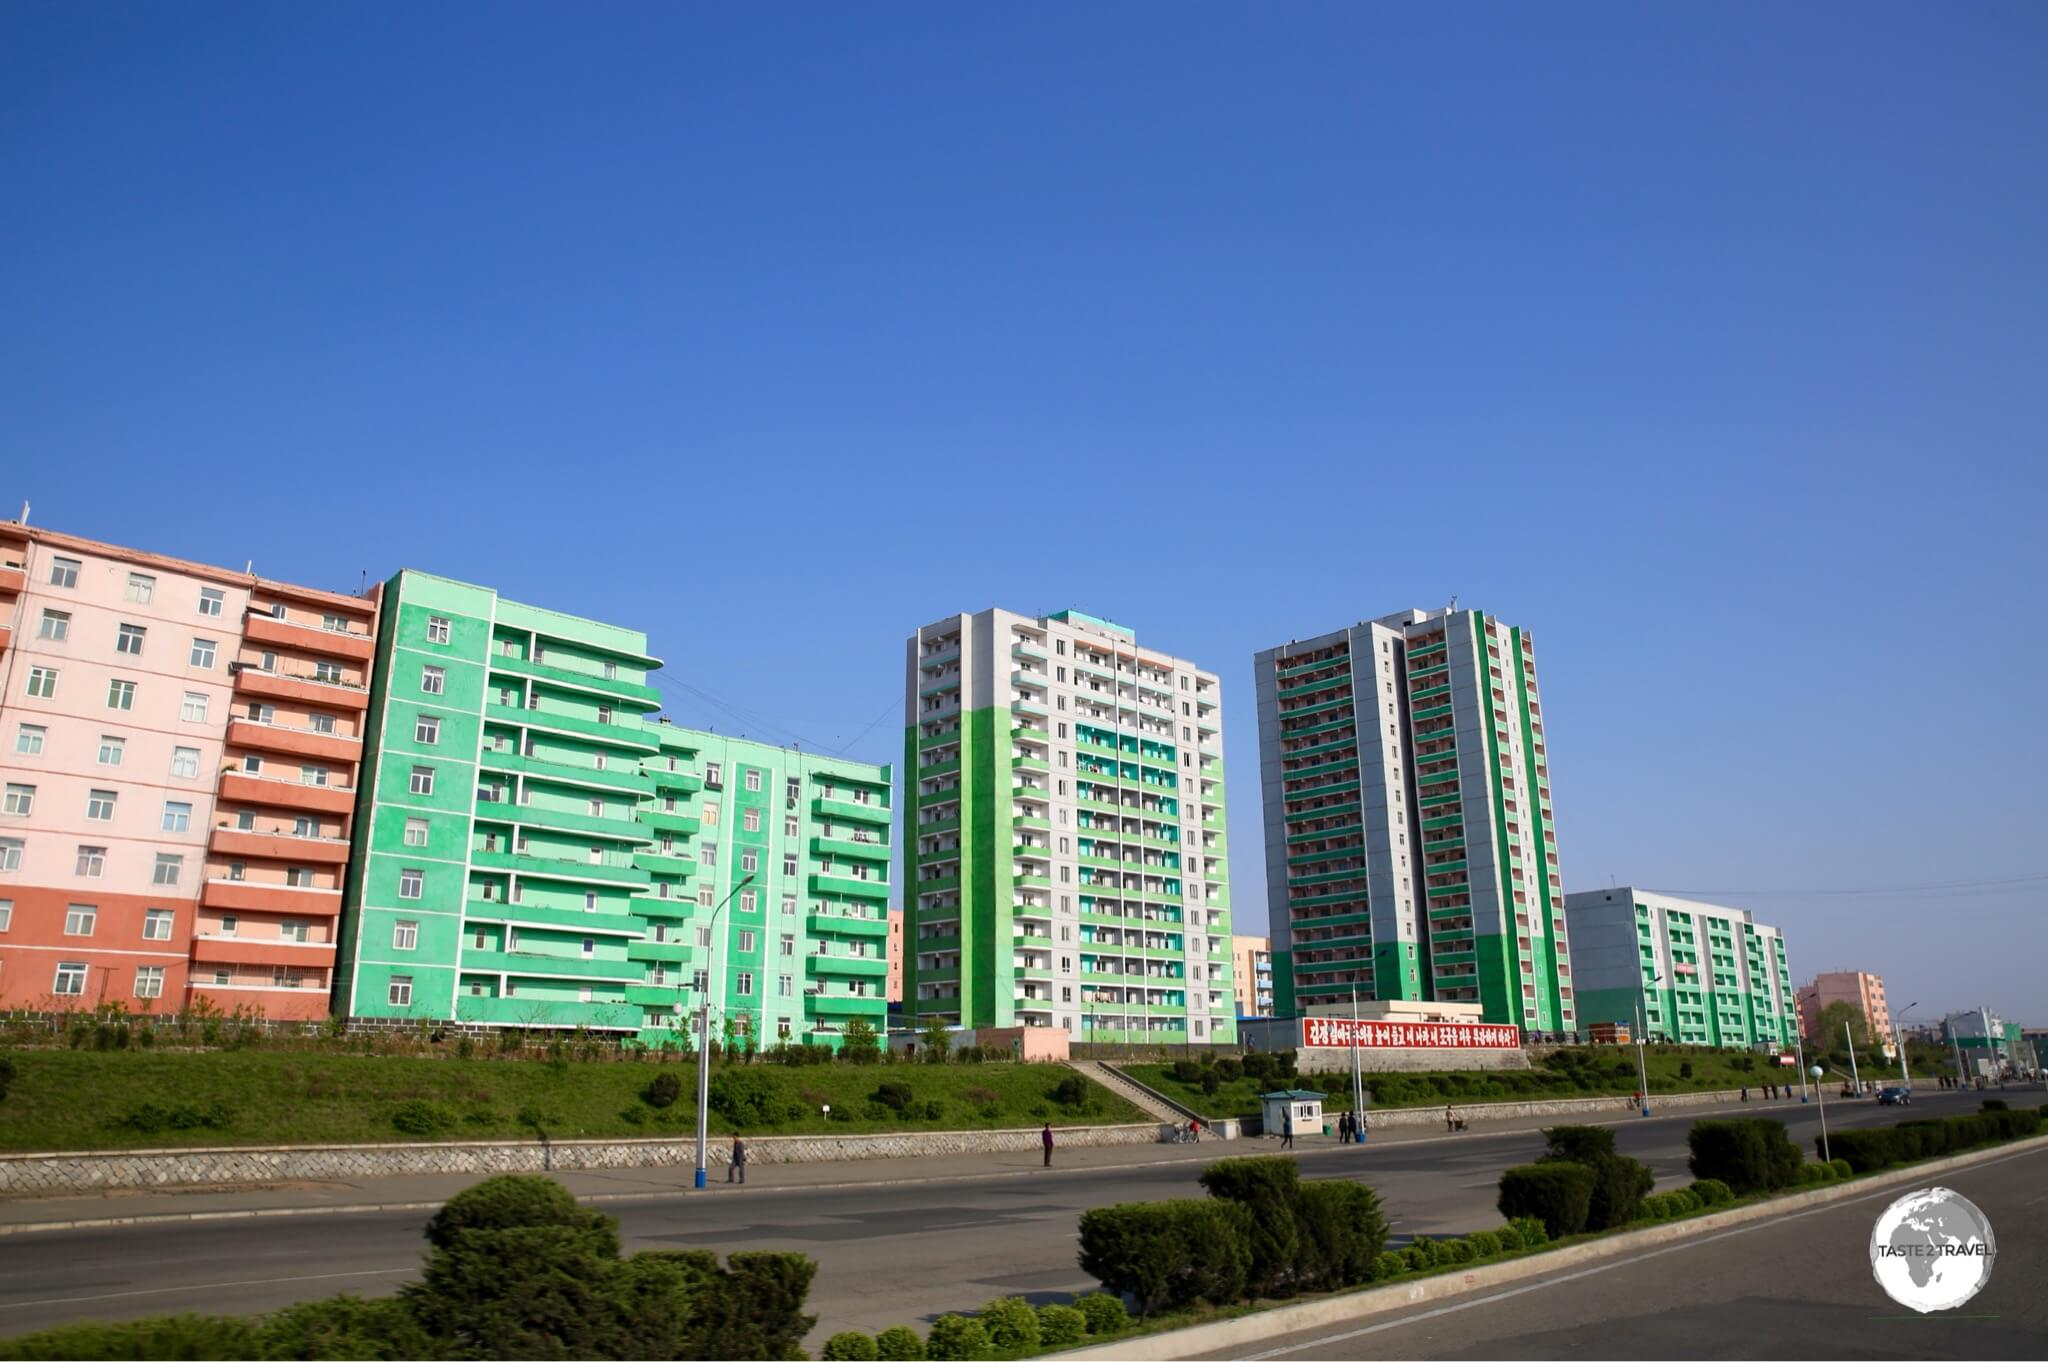 Colorful apartment buildings in Nampo.